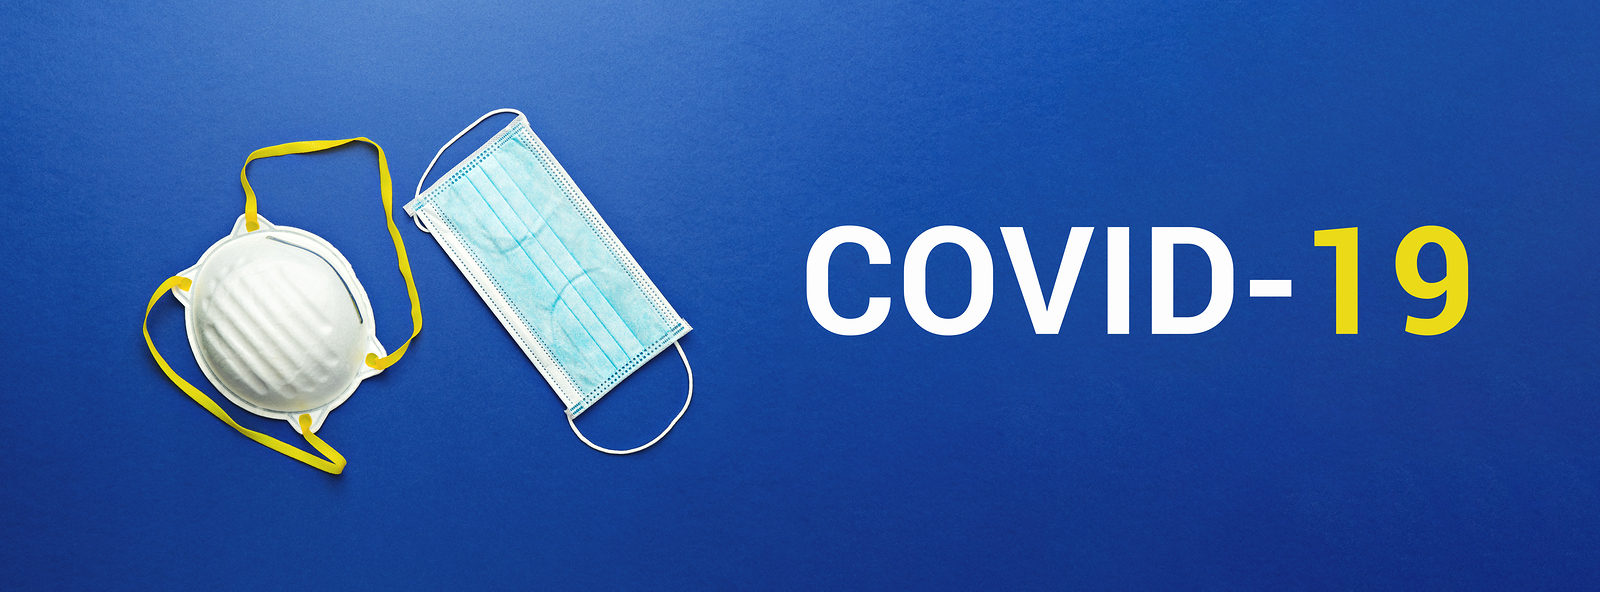 Two types of protective face masks on blue background with inscription COVID-19. Protective masks as precaution in spread of coronavirus Covid-19 around world, banner, flat lay